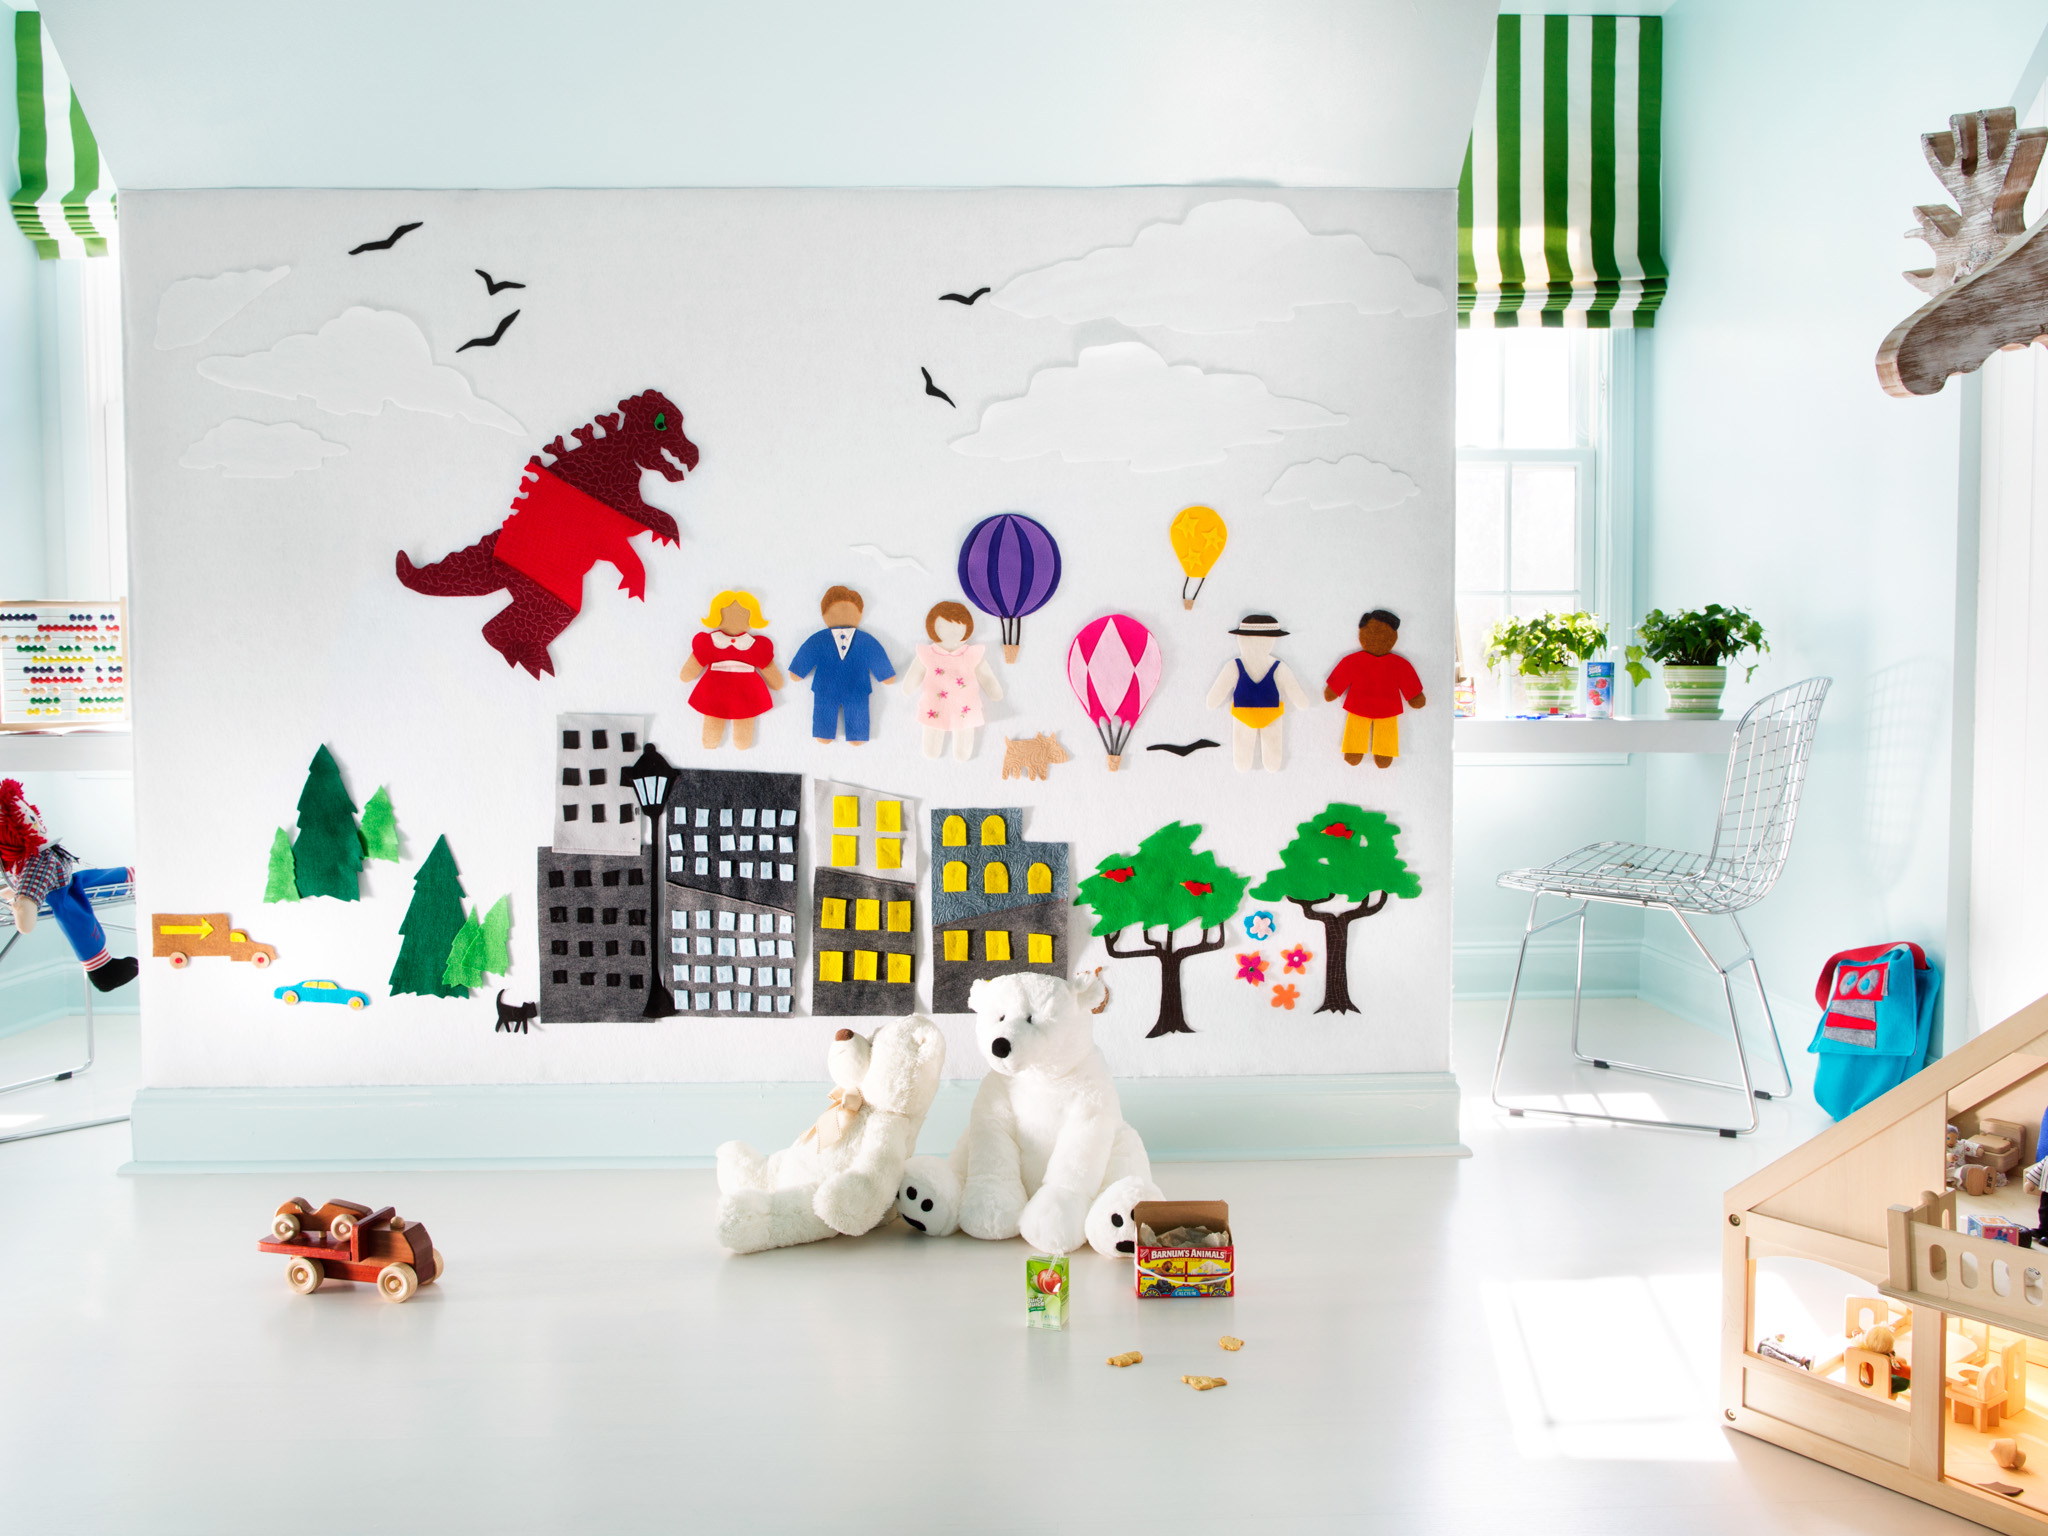 7 Simple Children's Playroom Inspirations, Your Little One Is Happy Without Draining Pockets